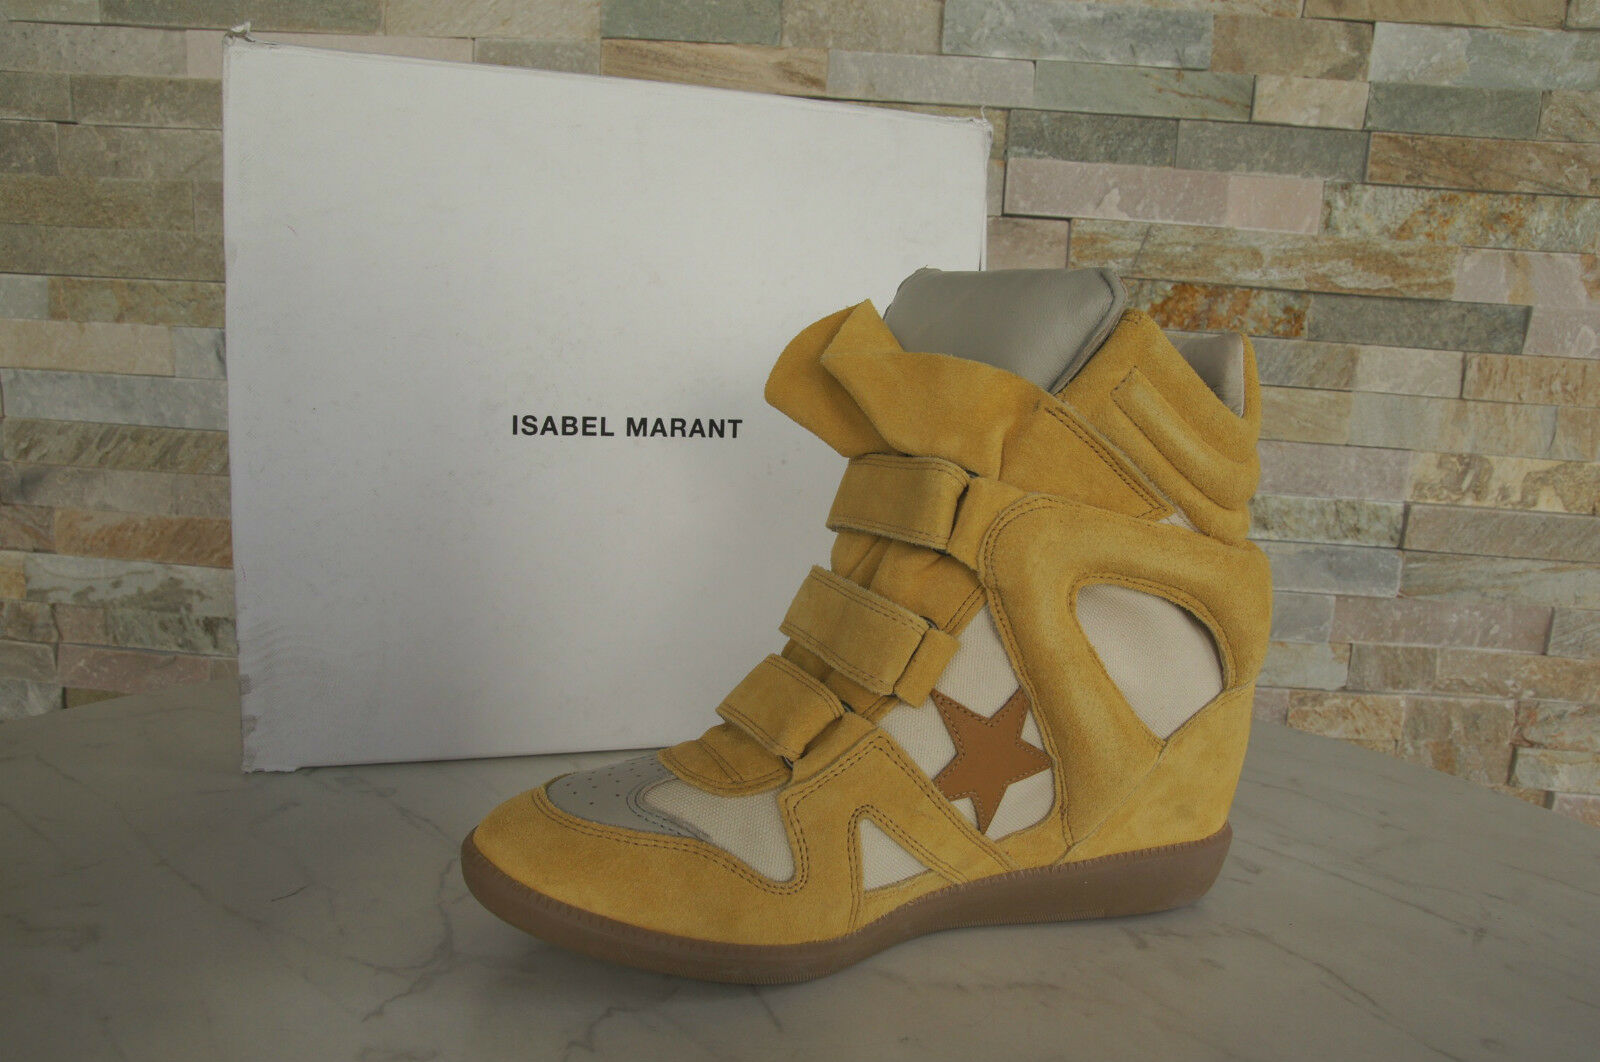 Isabel Marant 41 High Top Booties zapatillas botines Booties Top Bayley amarillo 896aed